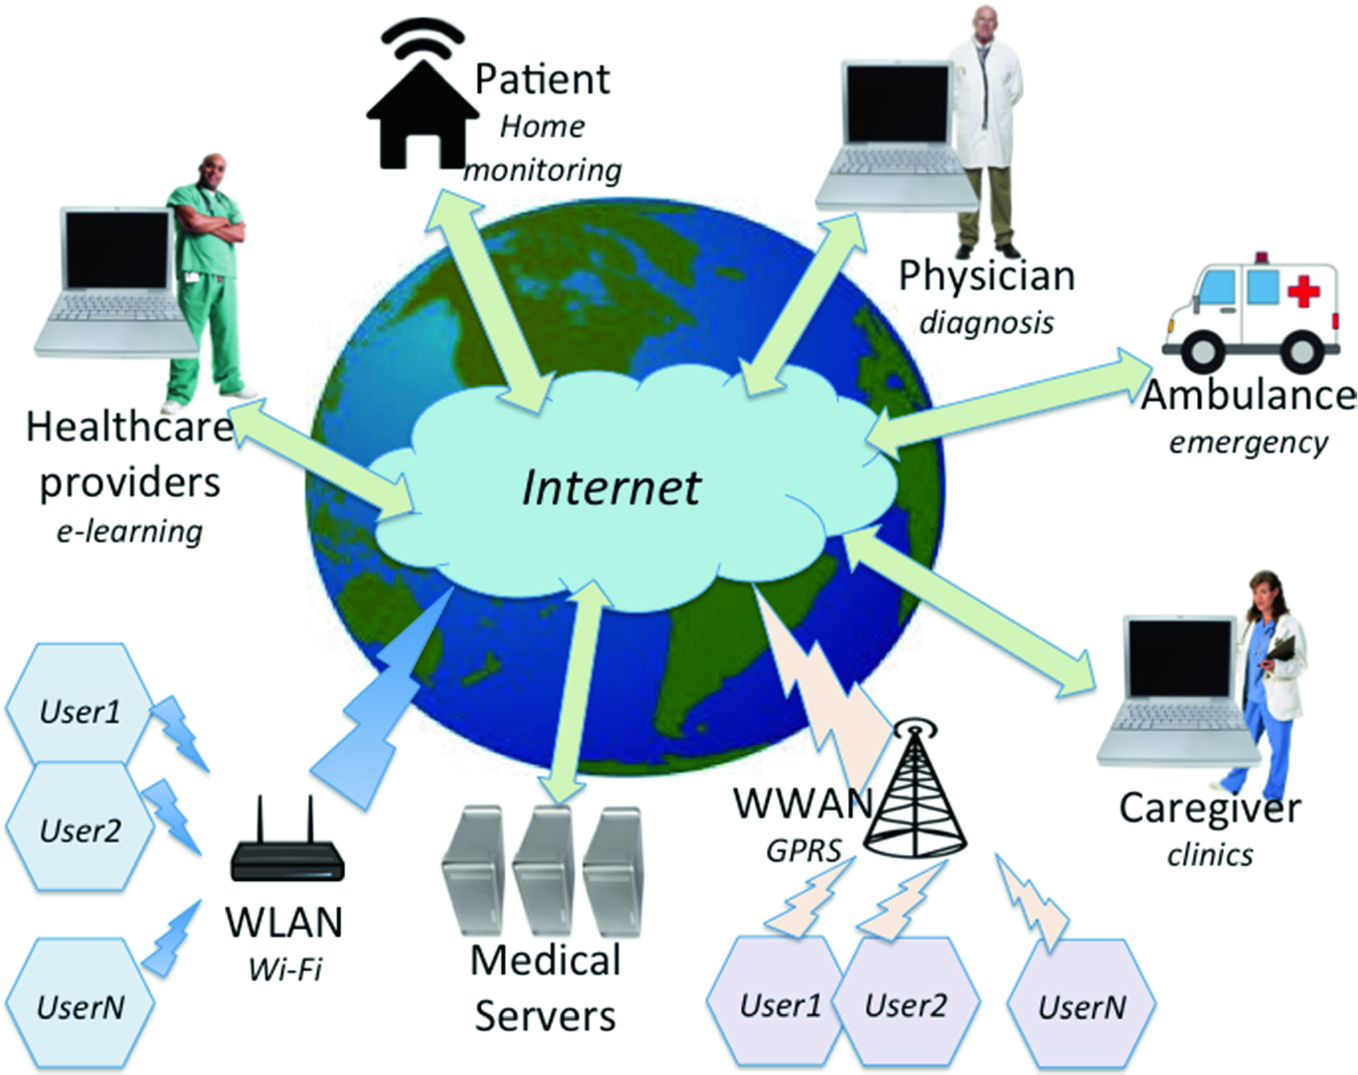 Tele-, Mobile- and Web-Based Technologies in Cardiovascular Medicine